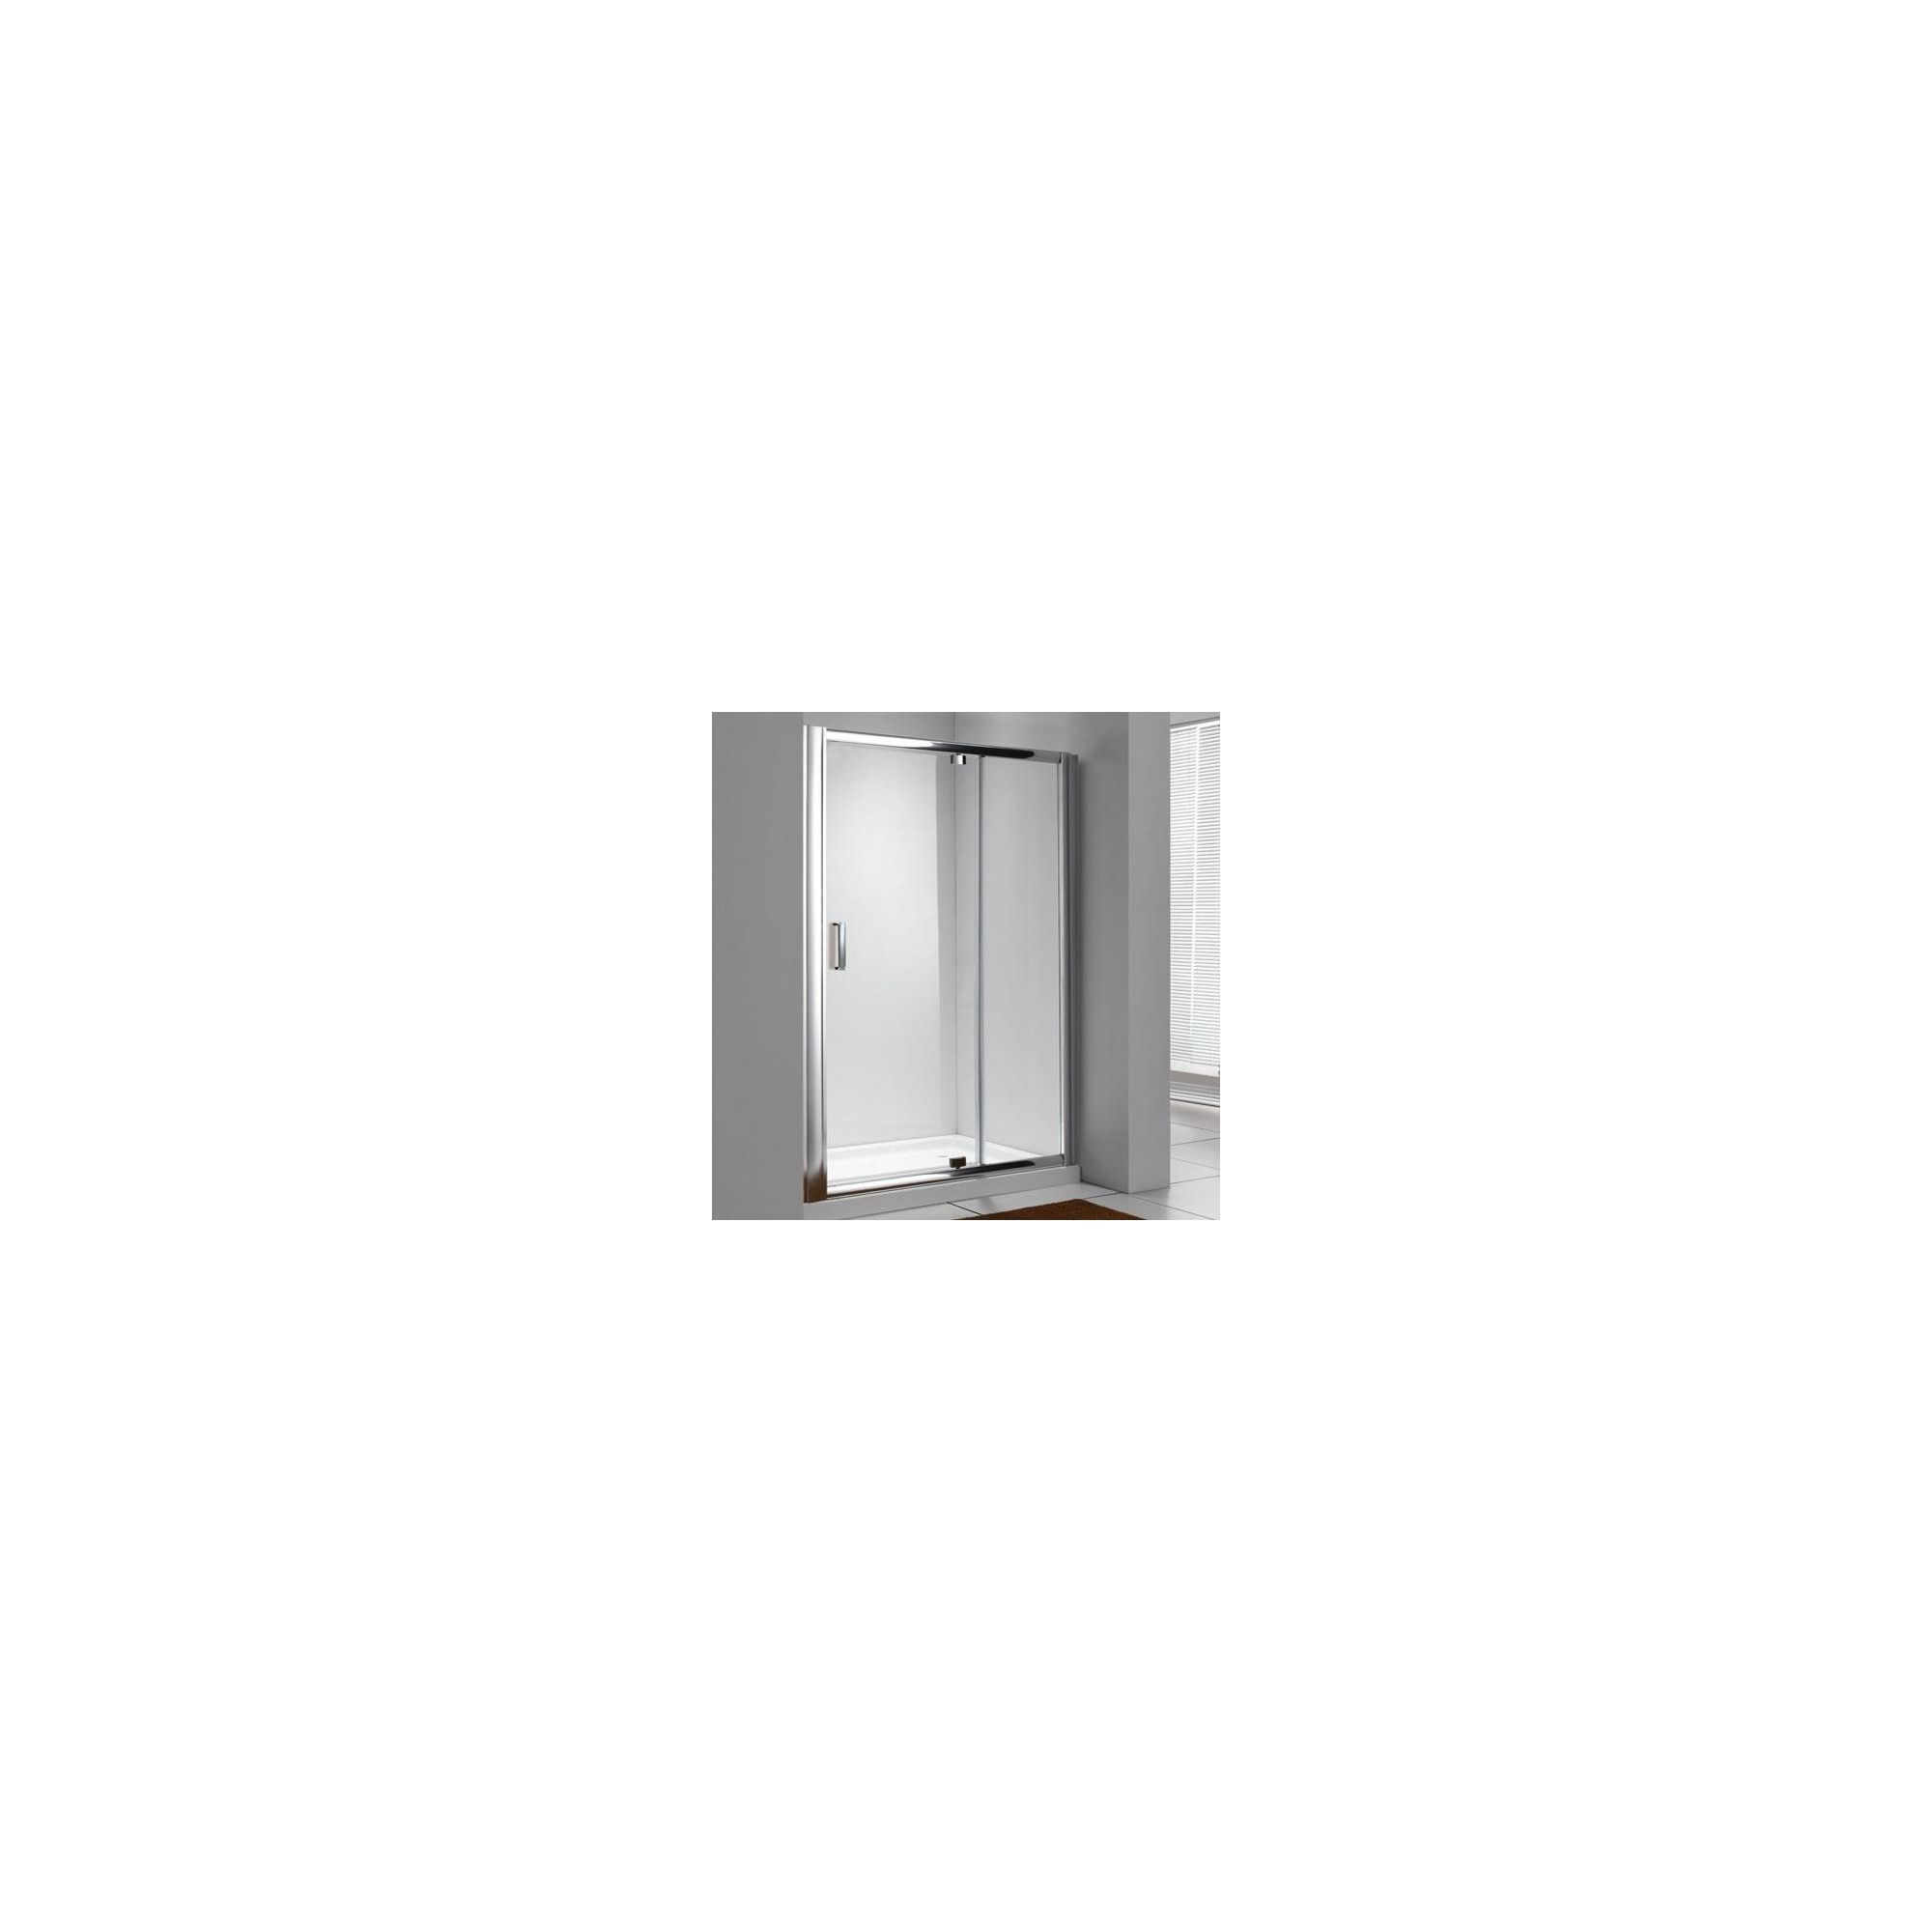 Duchy Style Pivot Door Shower Enclosure, 1200mm x 900mm, 6mm Glass, Low Profile Tray at Tesco Direct